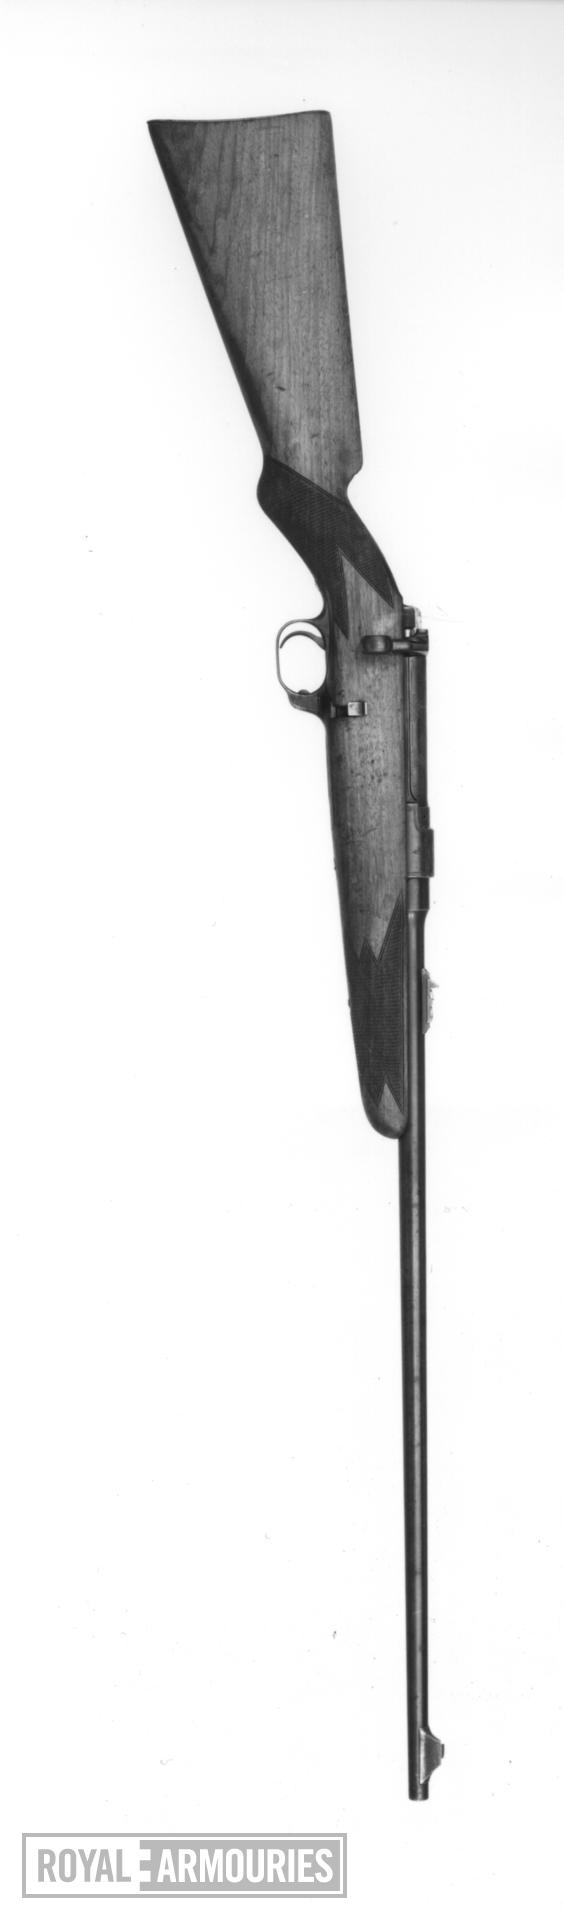 Centrefire bolt-action magazine sporting rifle - Ross Model 1900